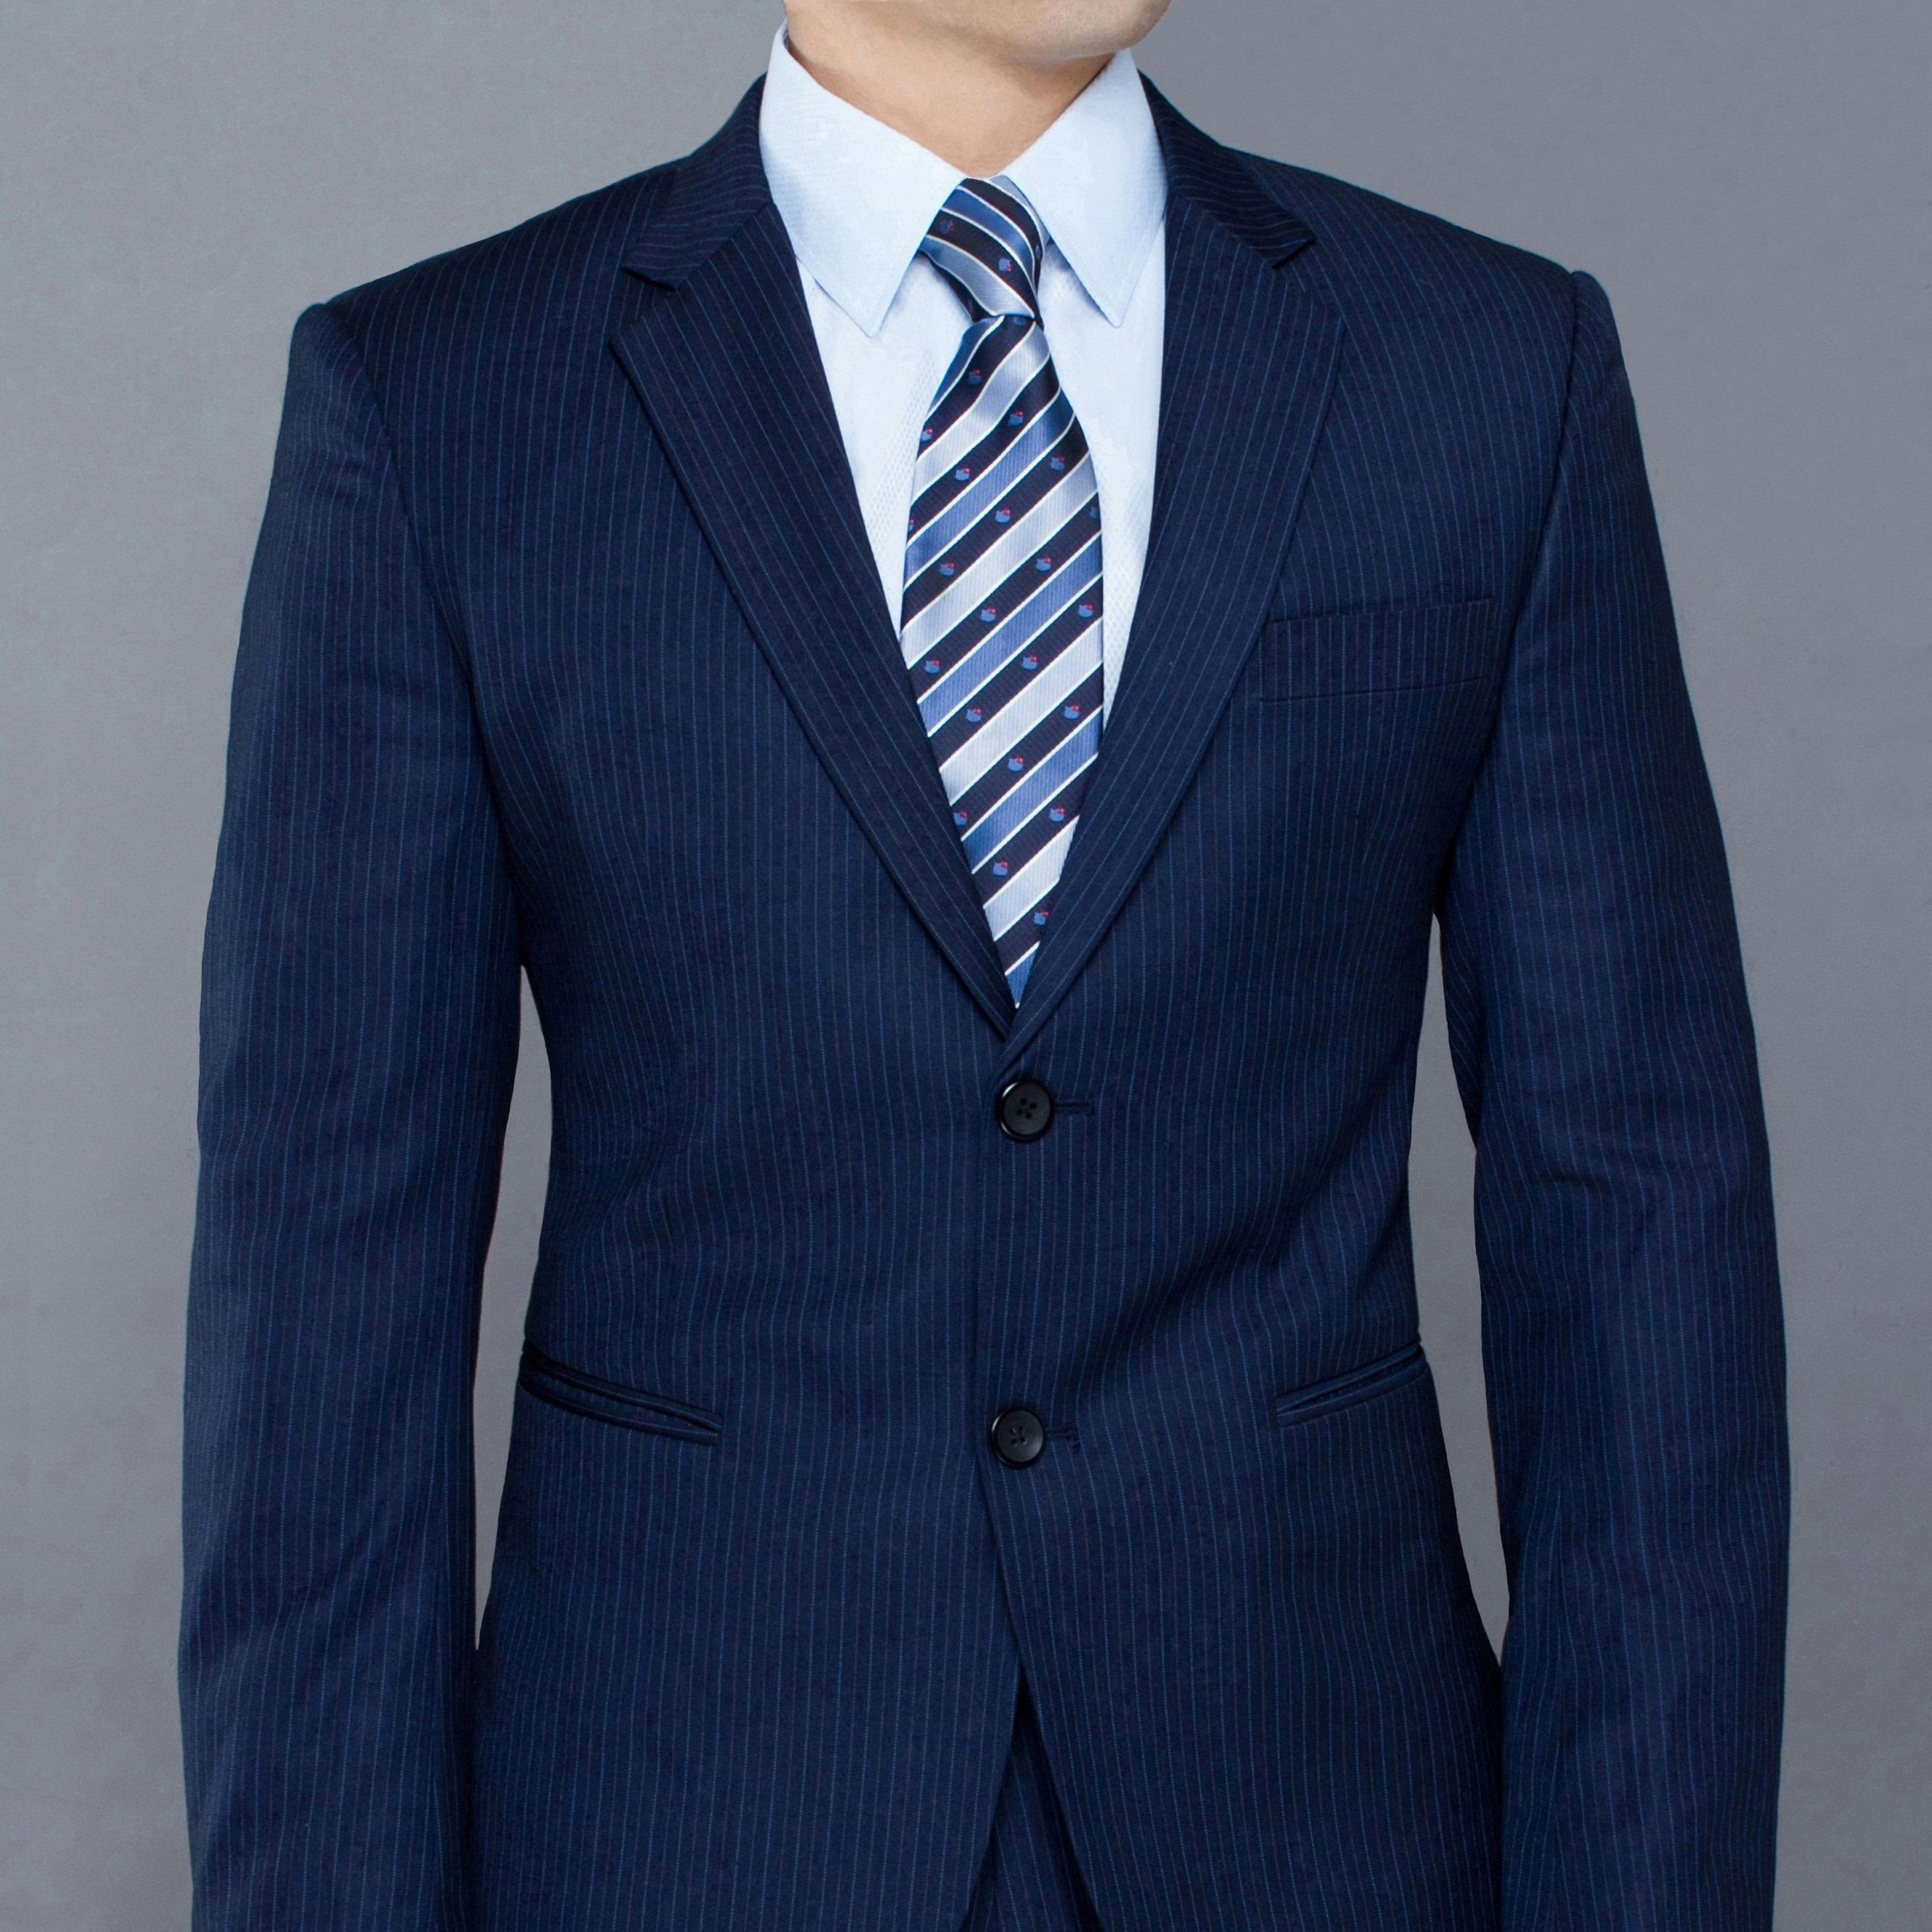 Majestas Royal Blue Pinstripe Suit Price: 449$ http://www.zegare ...